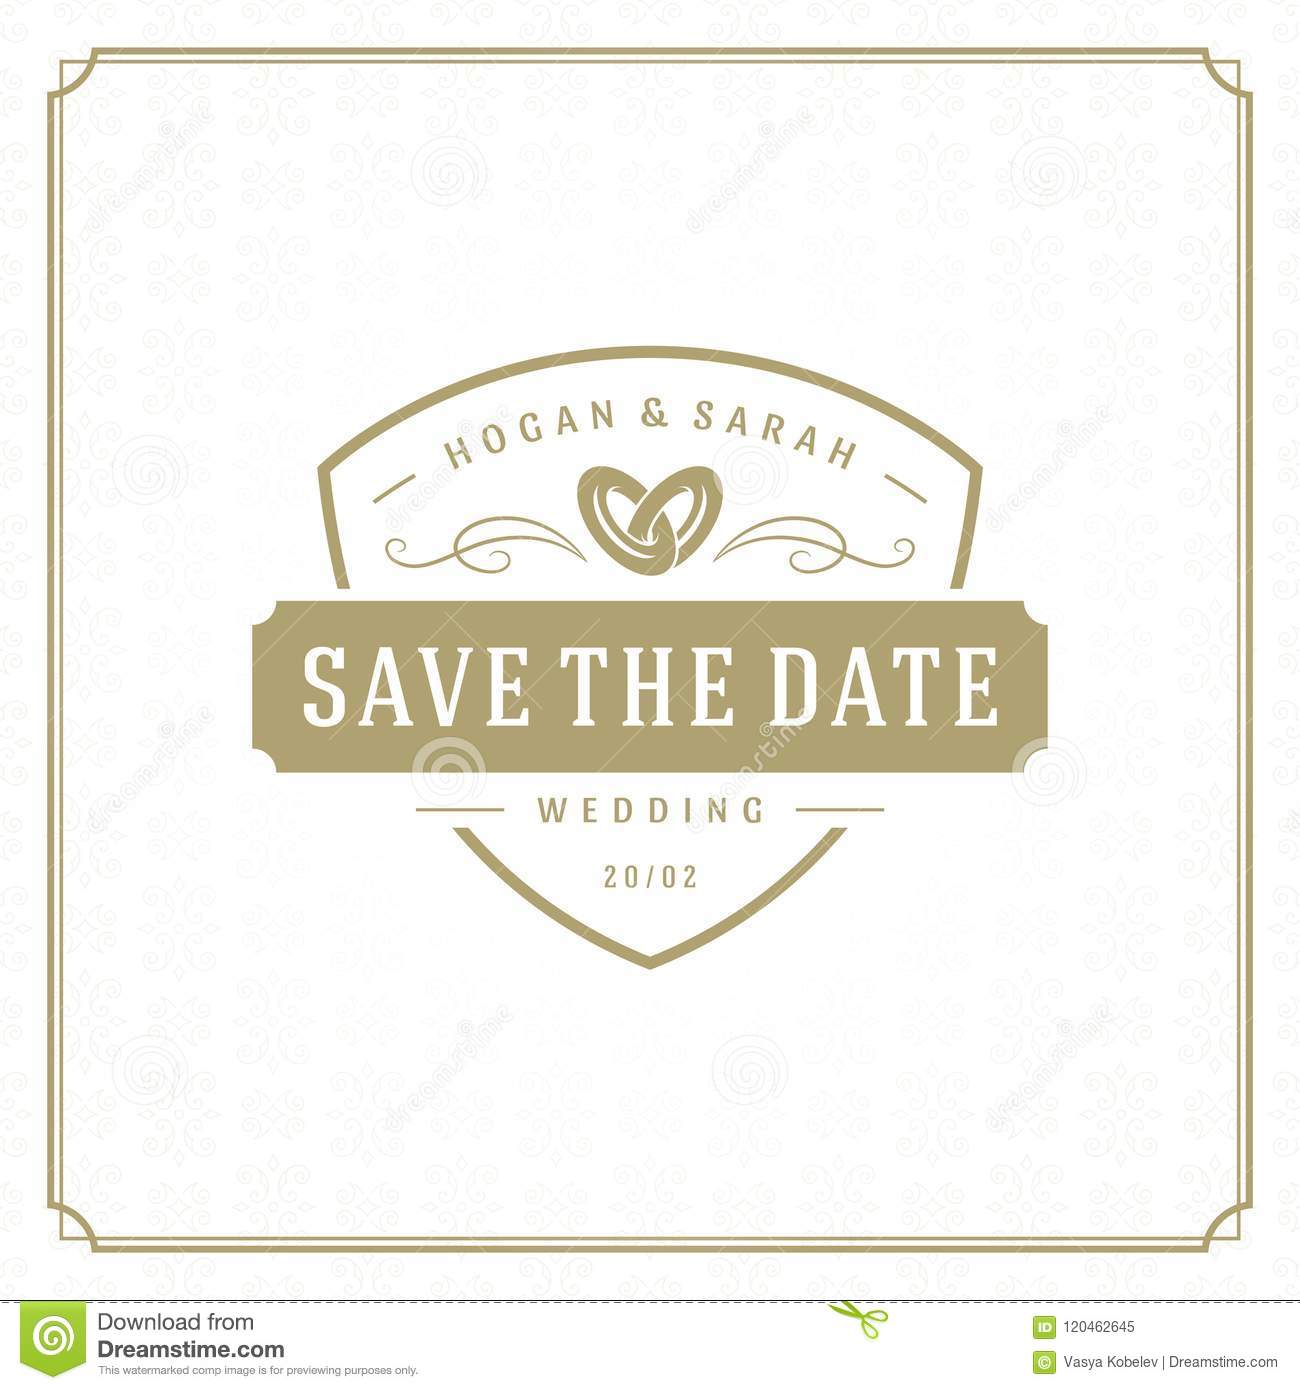 wedding save the date invitation card design template vector